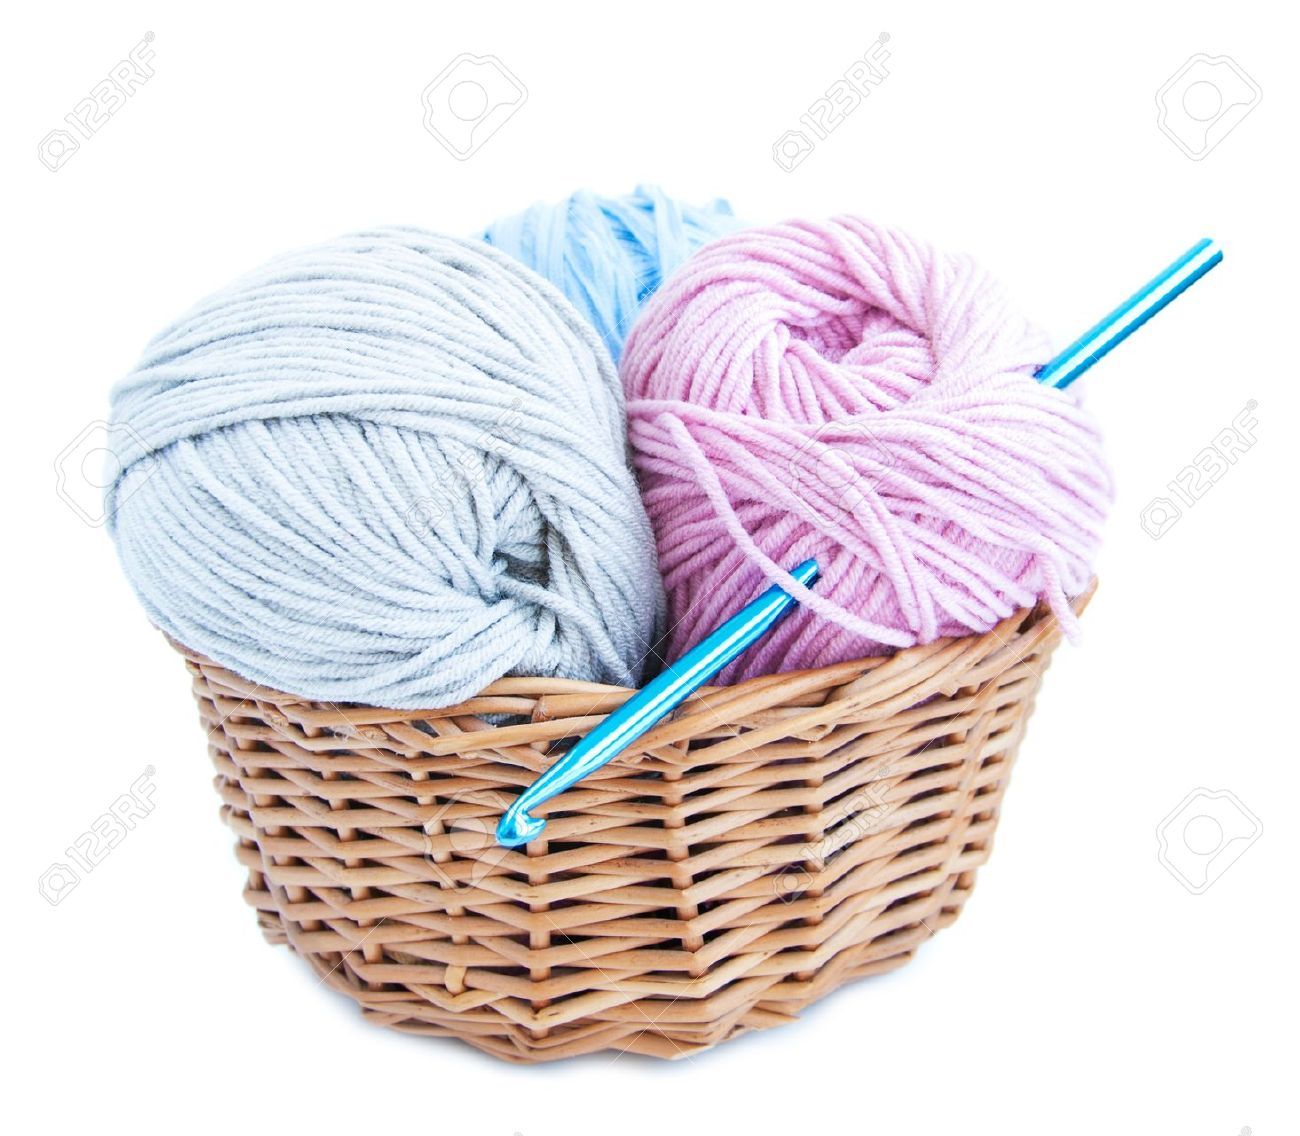 Crochet Hook And Yarn Clip Art Basket with crochet hook and